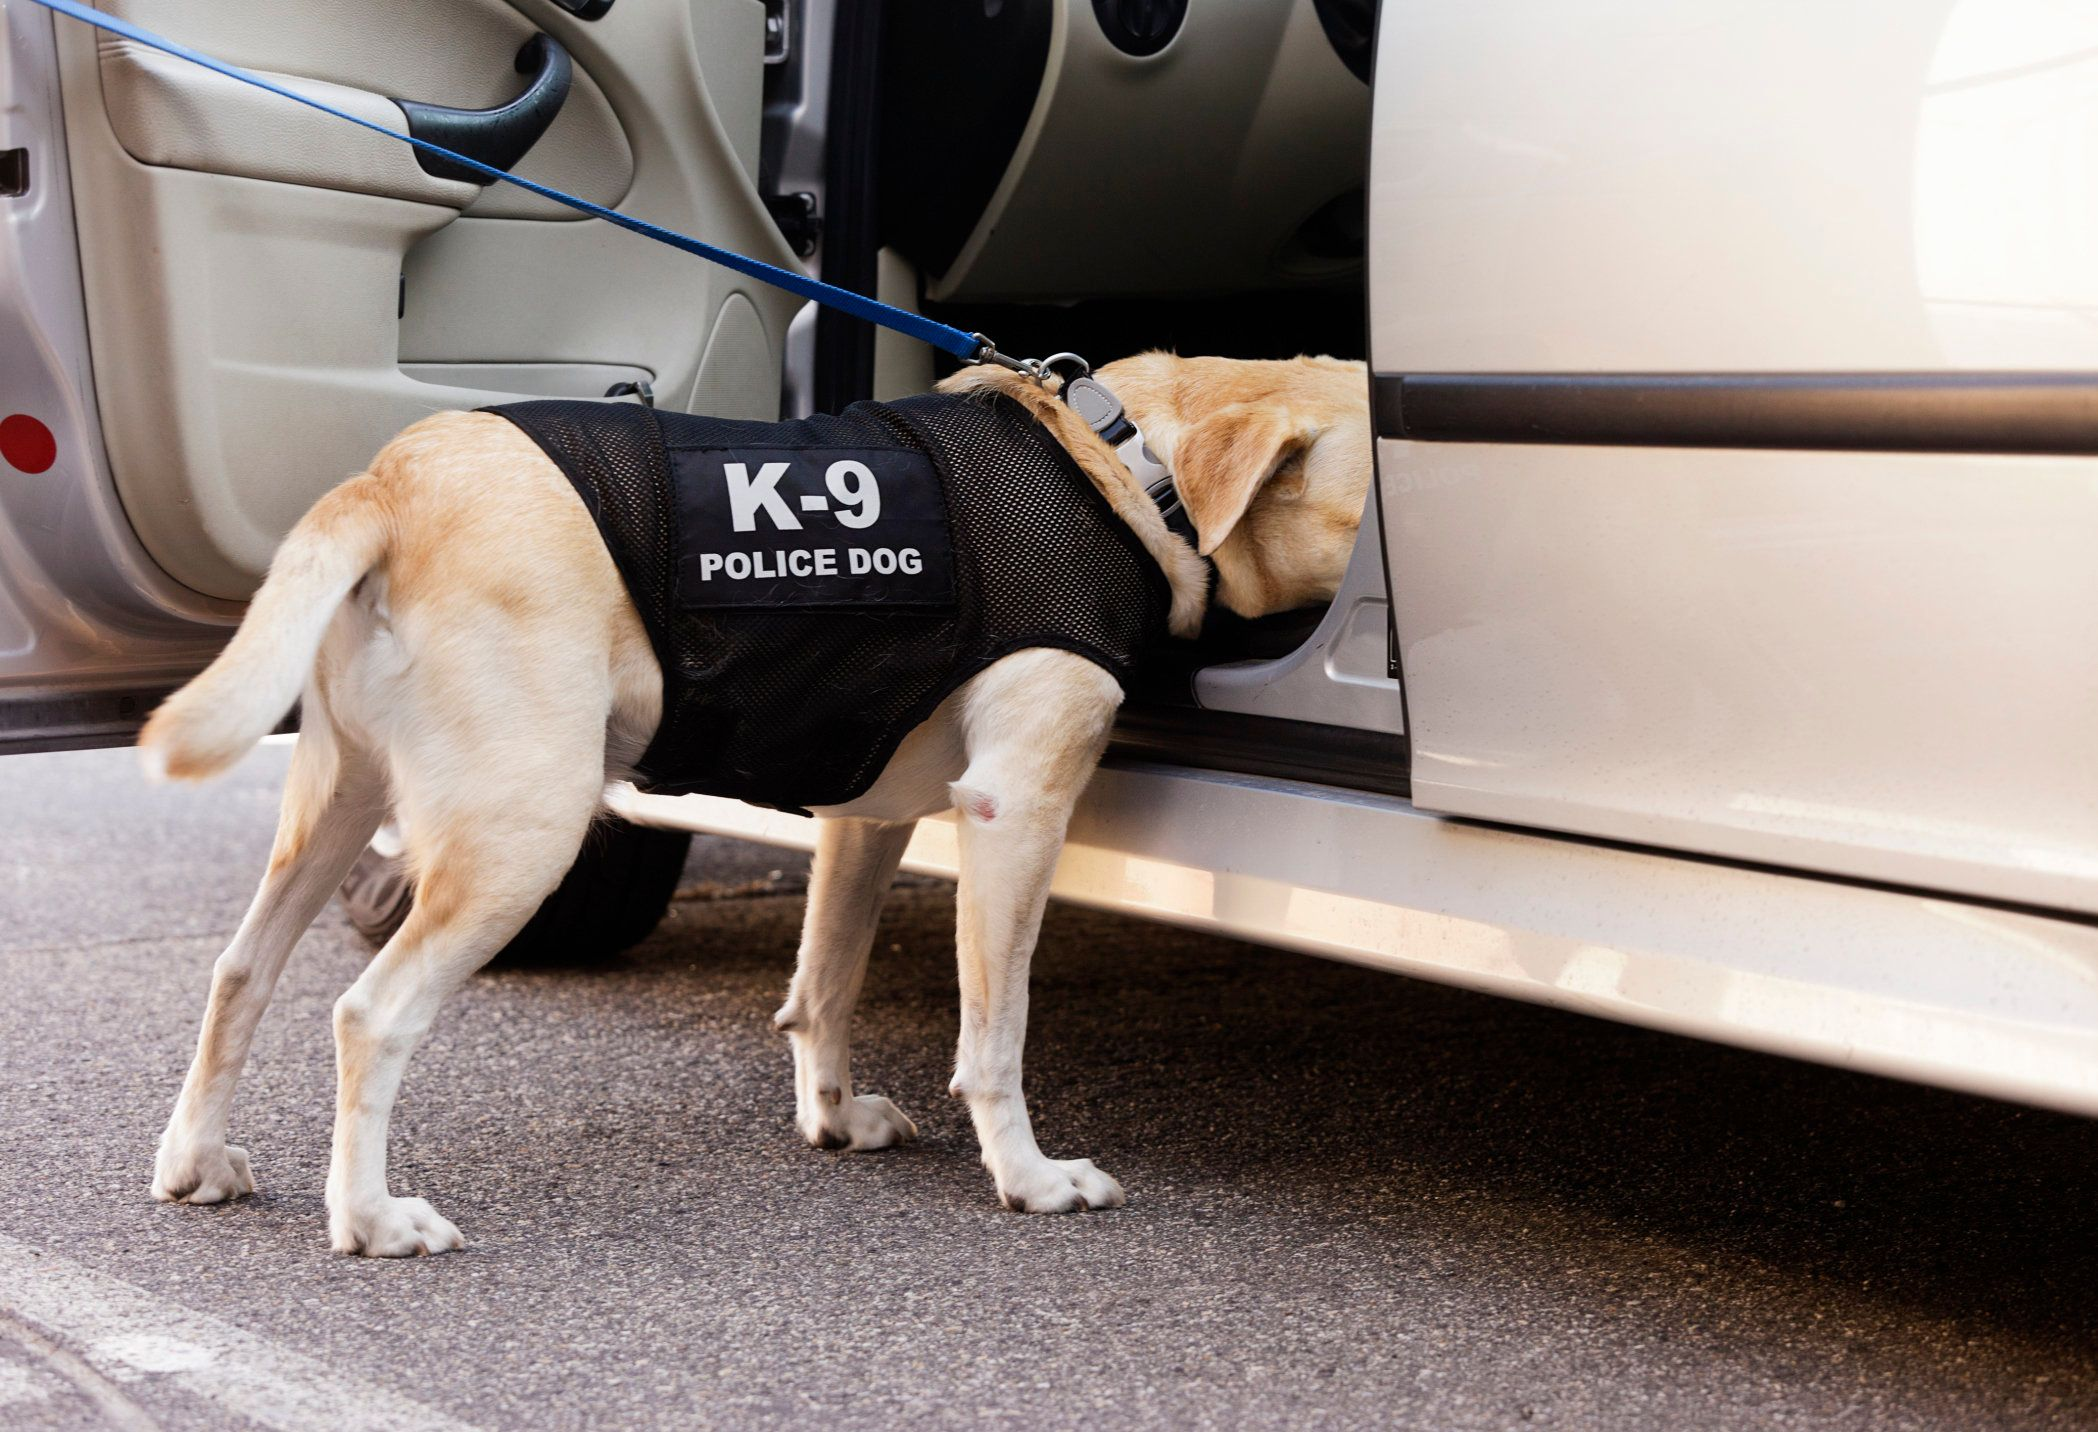 A drug-sniffing police dog investigates the inside of a car.